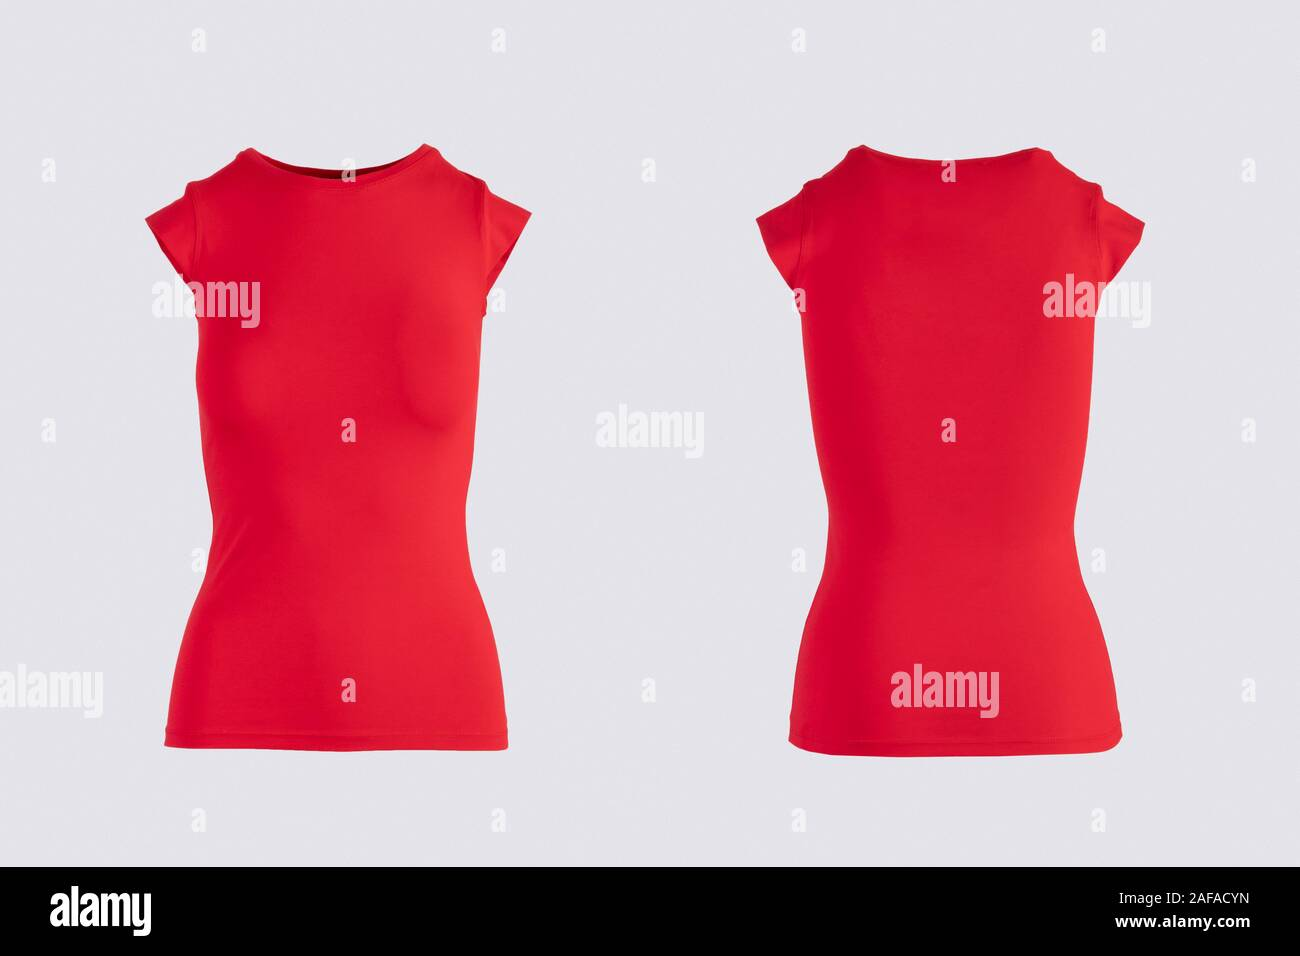 Women S Blank Red Short Sleeve T Shirt Front And Back Rear View